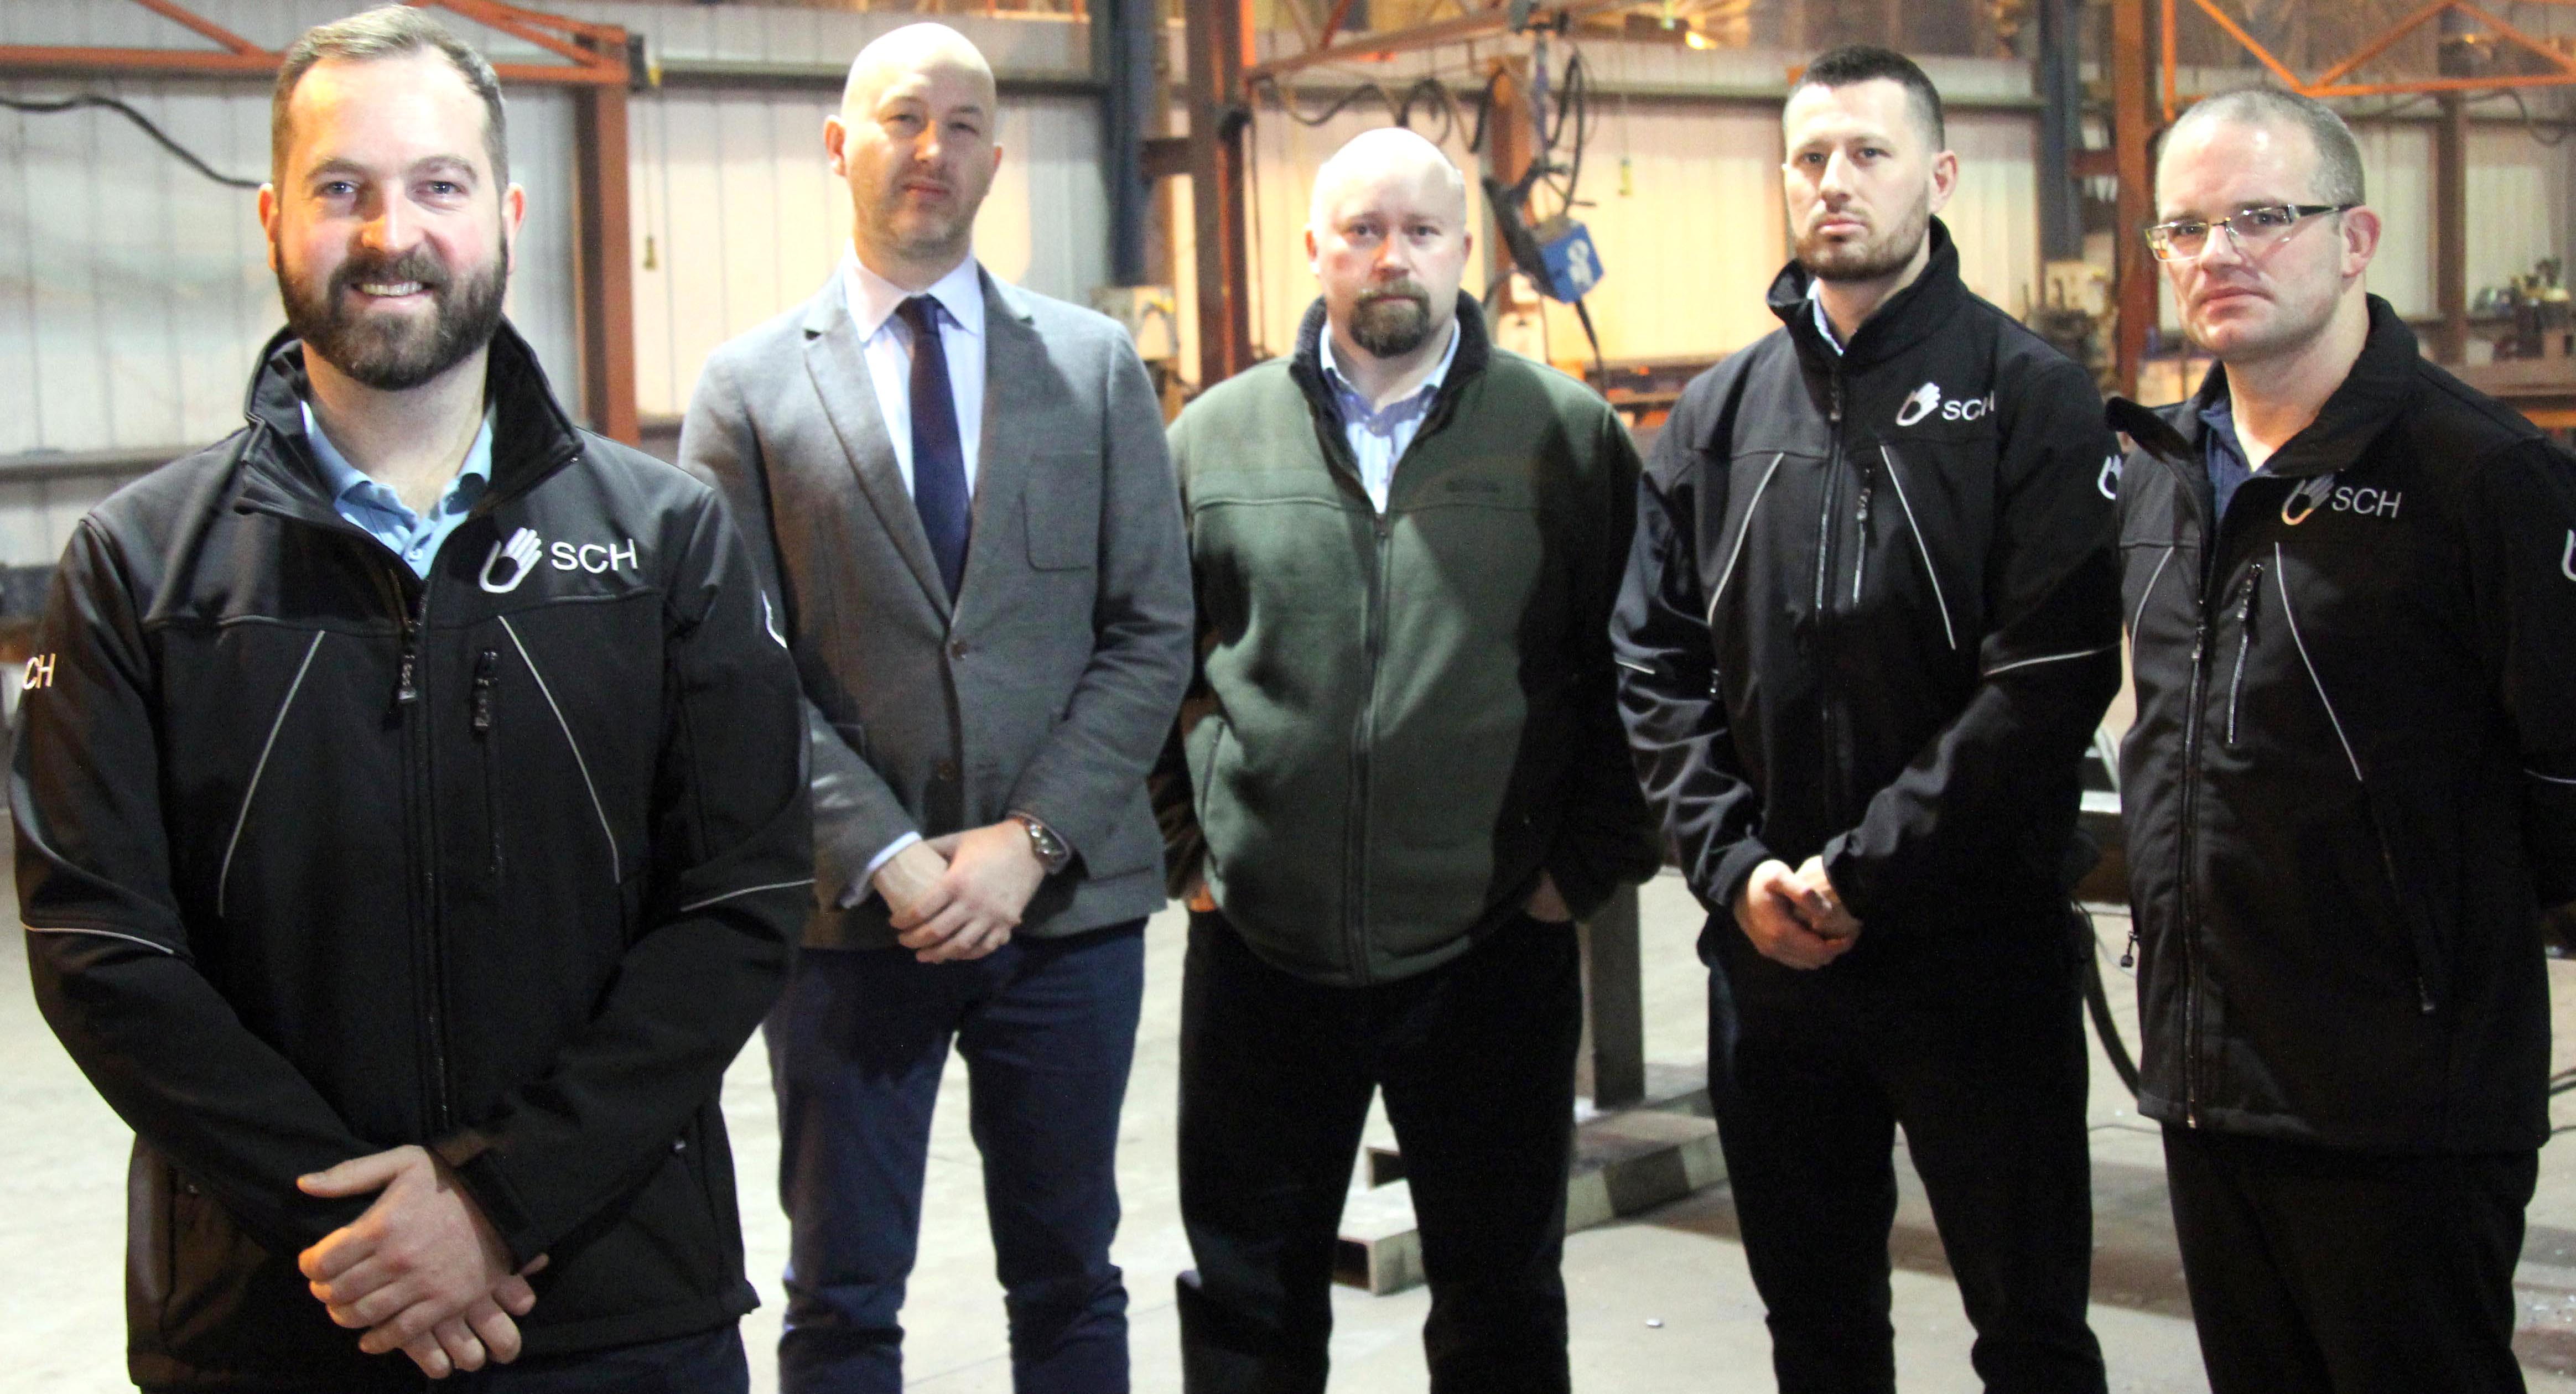 Aycliffe Firm Expands After Winning New Contracts